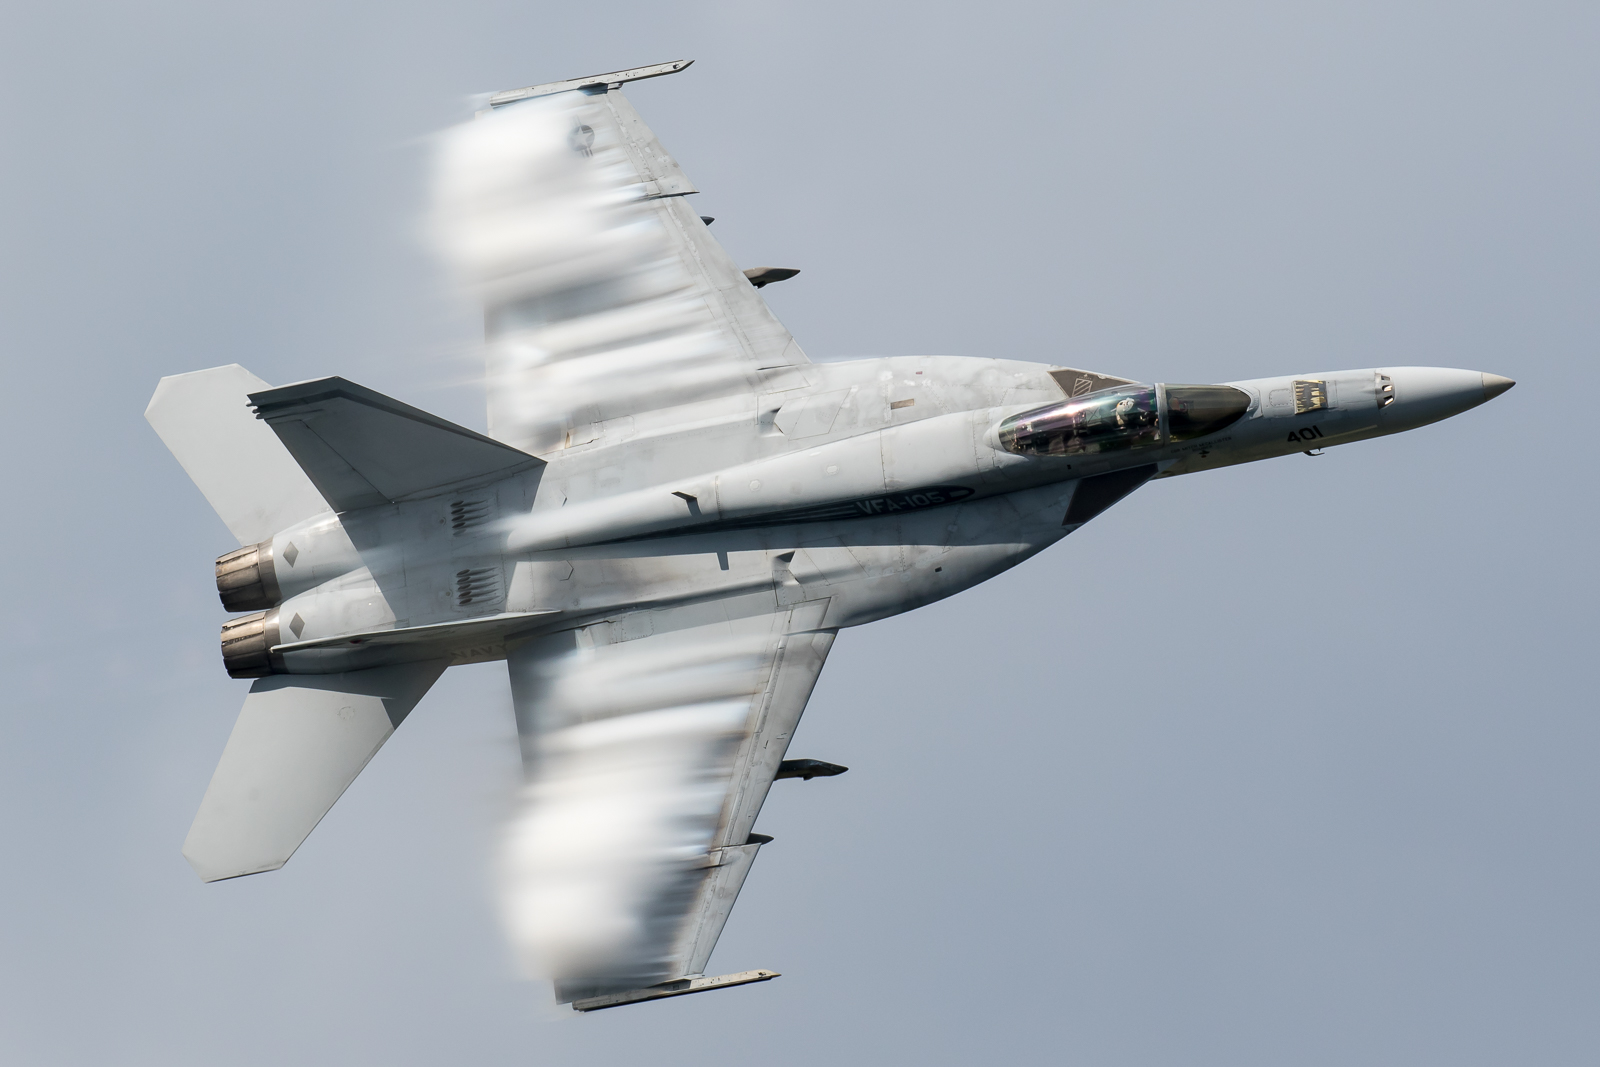 © Adam Duffield - F/A-18E 166651 performing a sneak pass - NAS Oceana Airshow 2017